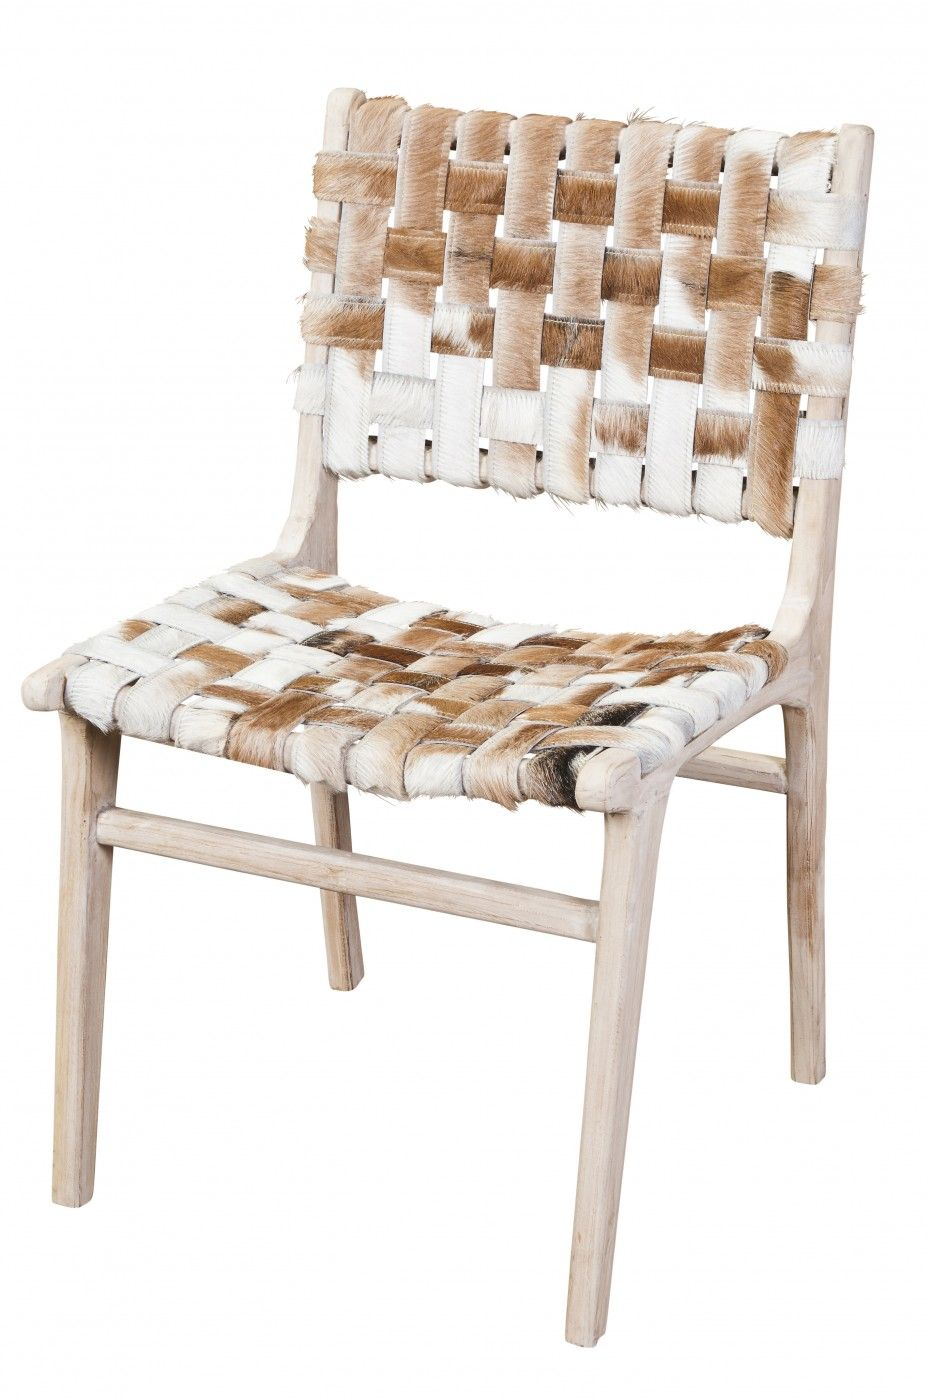 Woven Cowhide Dining Chair.